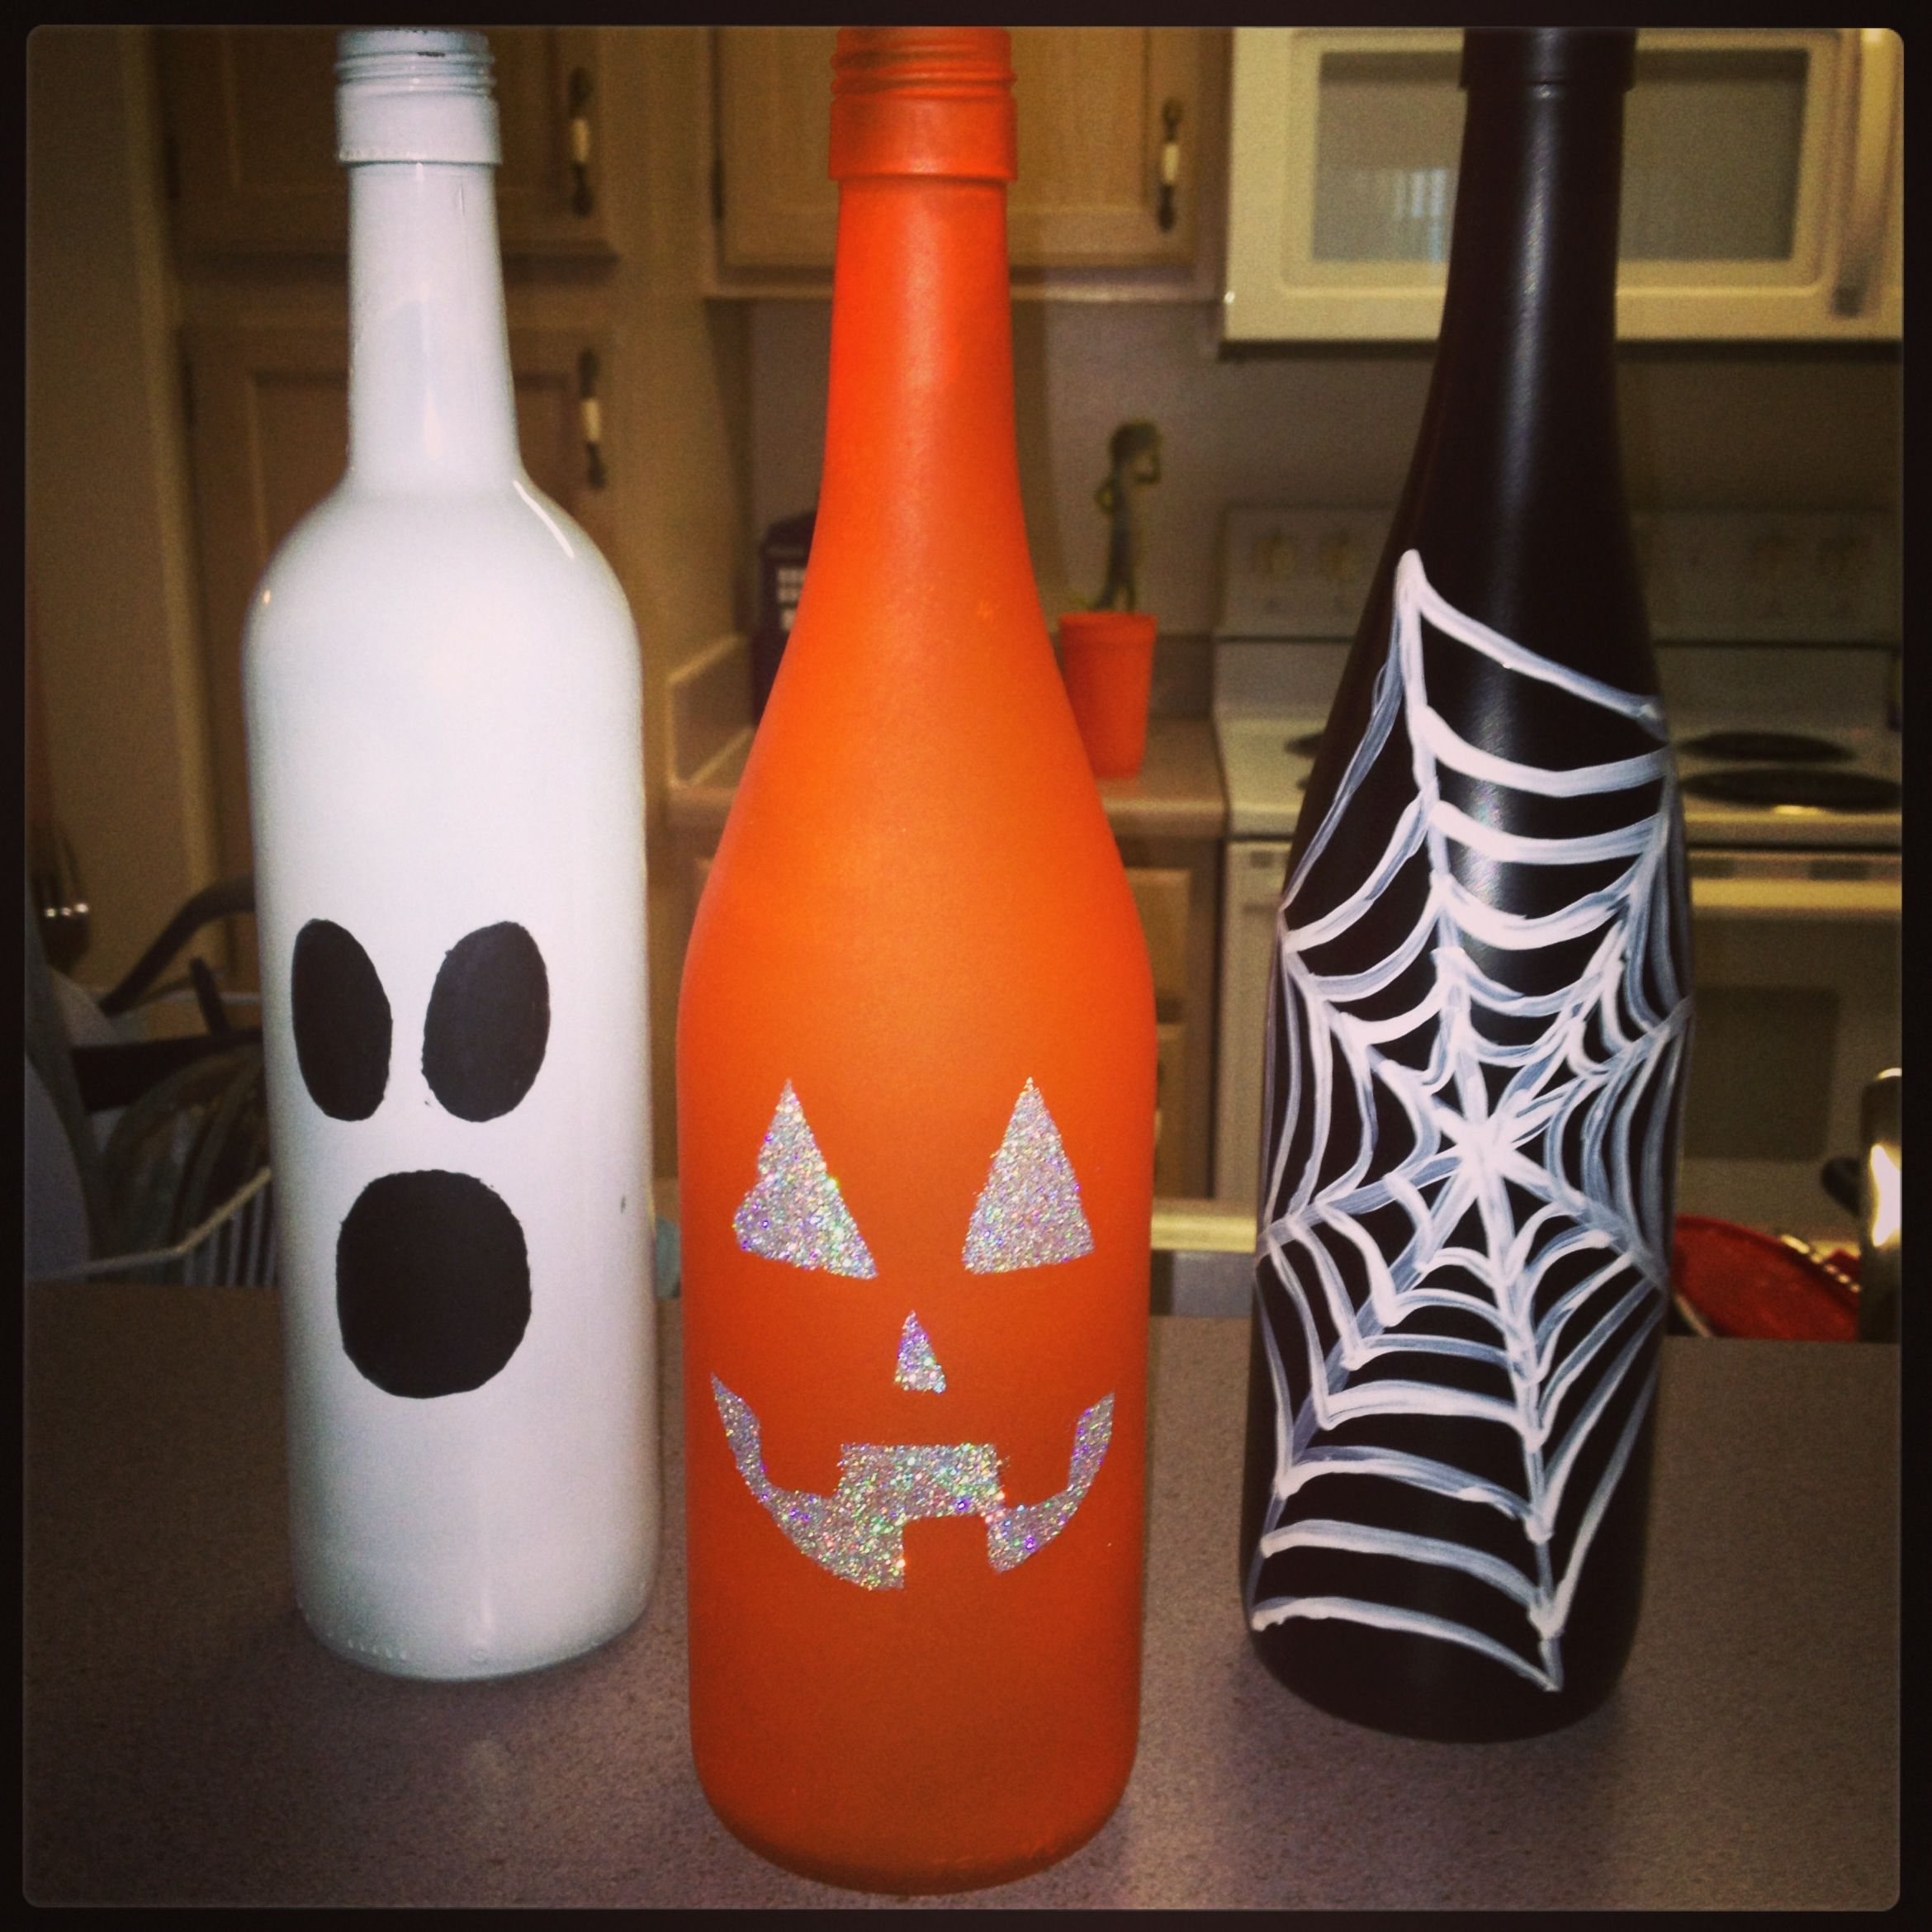 Halloween Bottle Decorations Halloween Wine Bottle Decorations  Holiday & Party Ideas